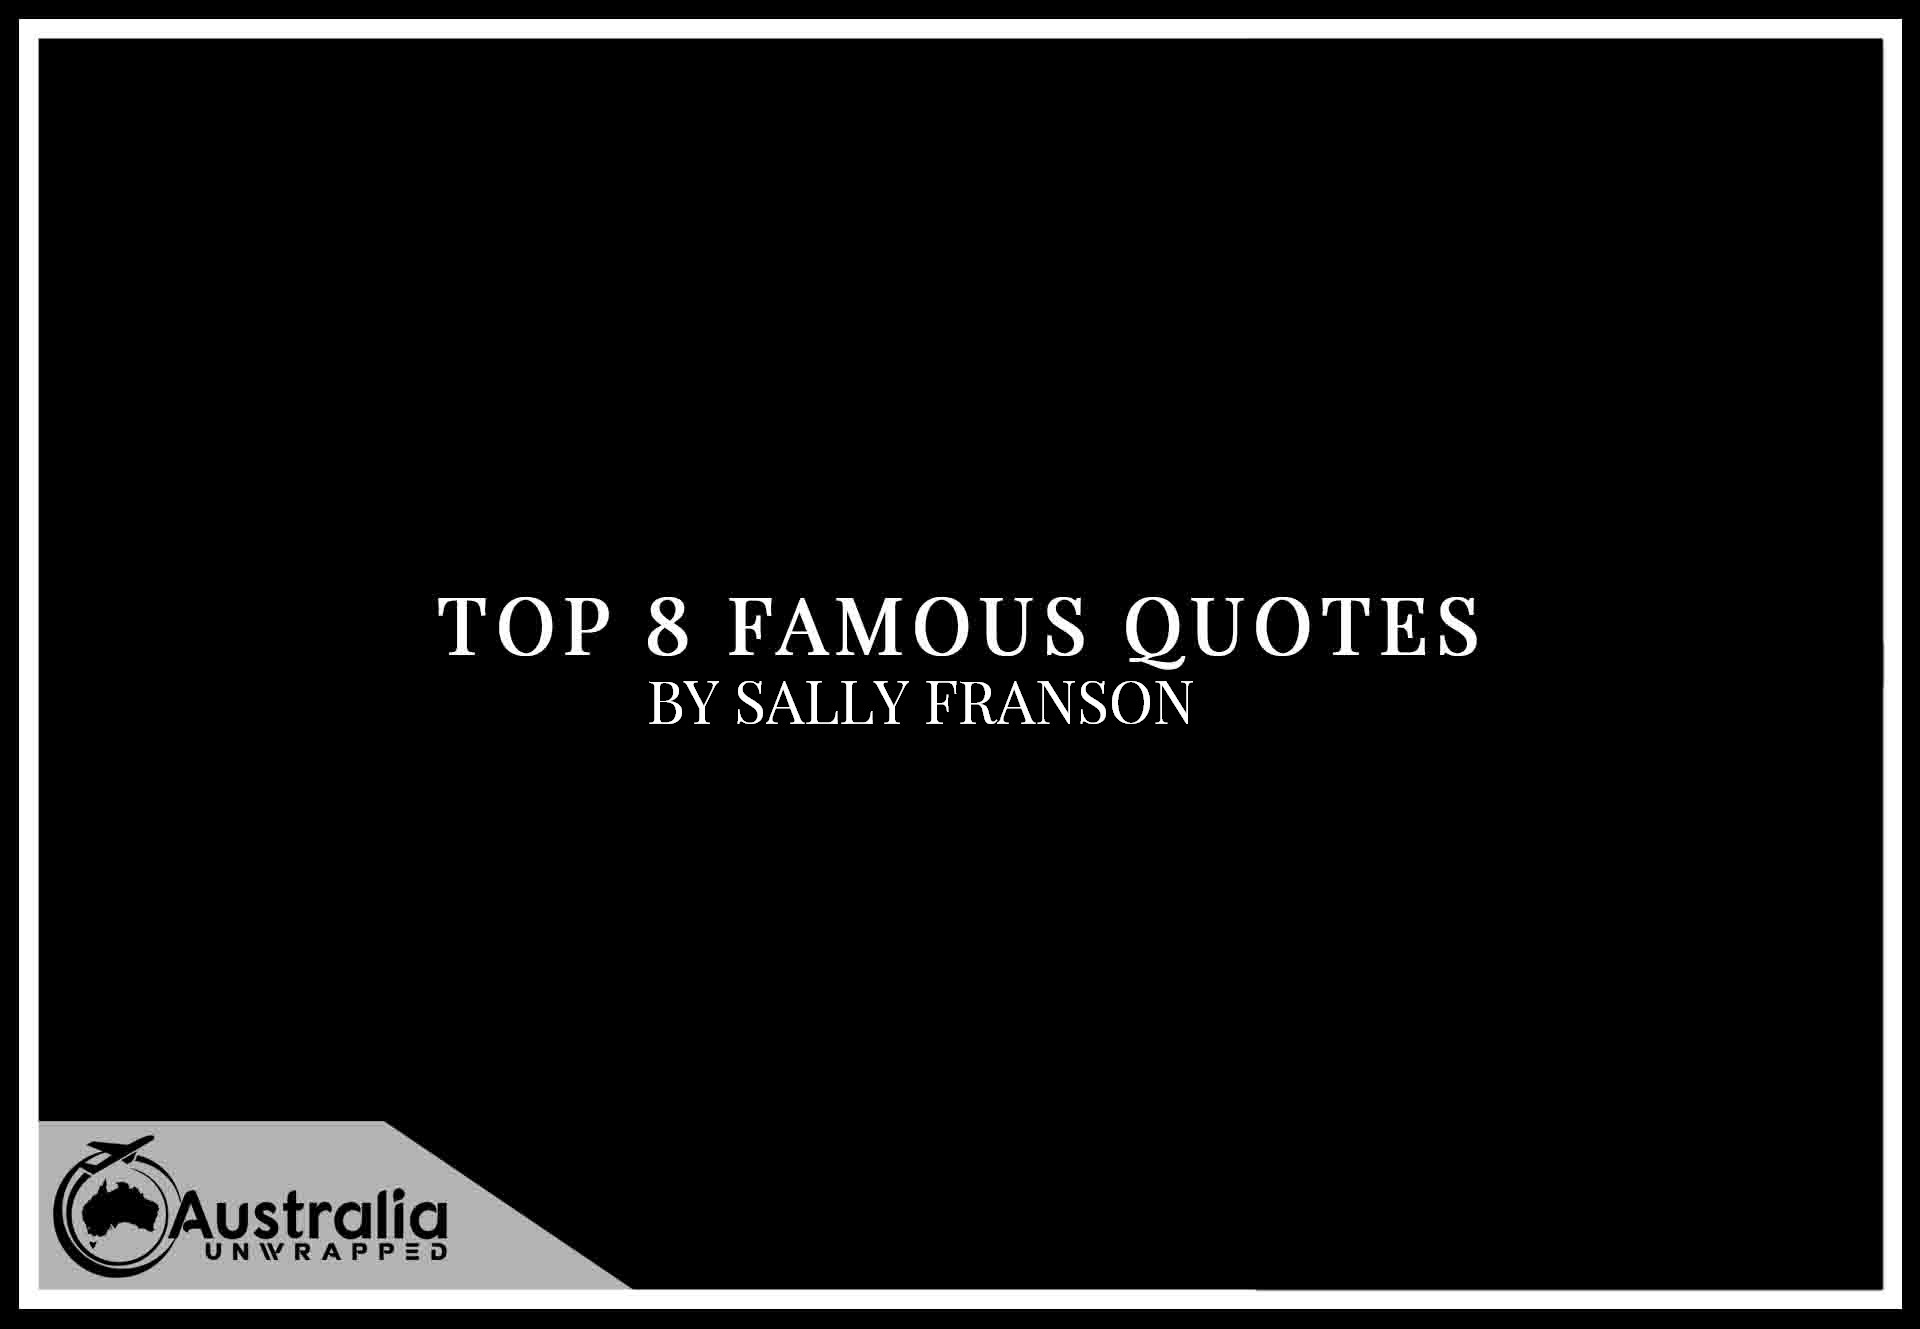 Top 8 Famous Quotes by Author Sally Franson